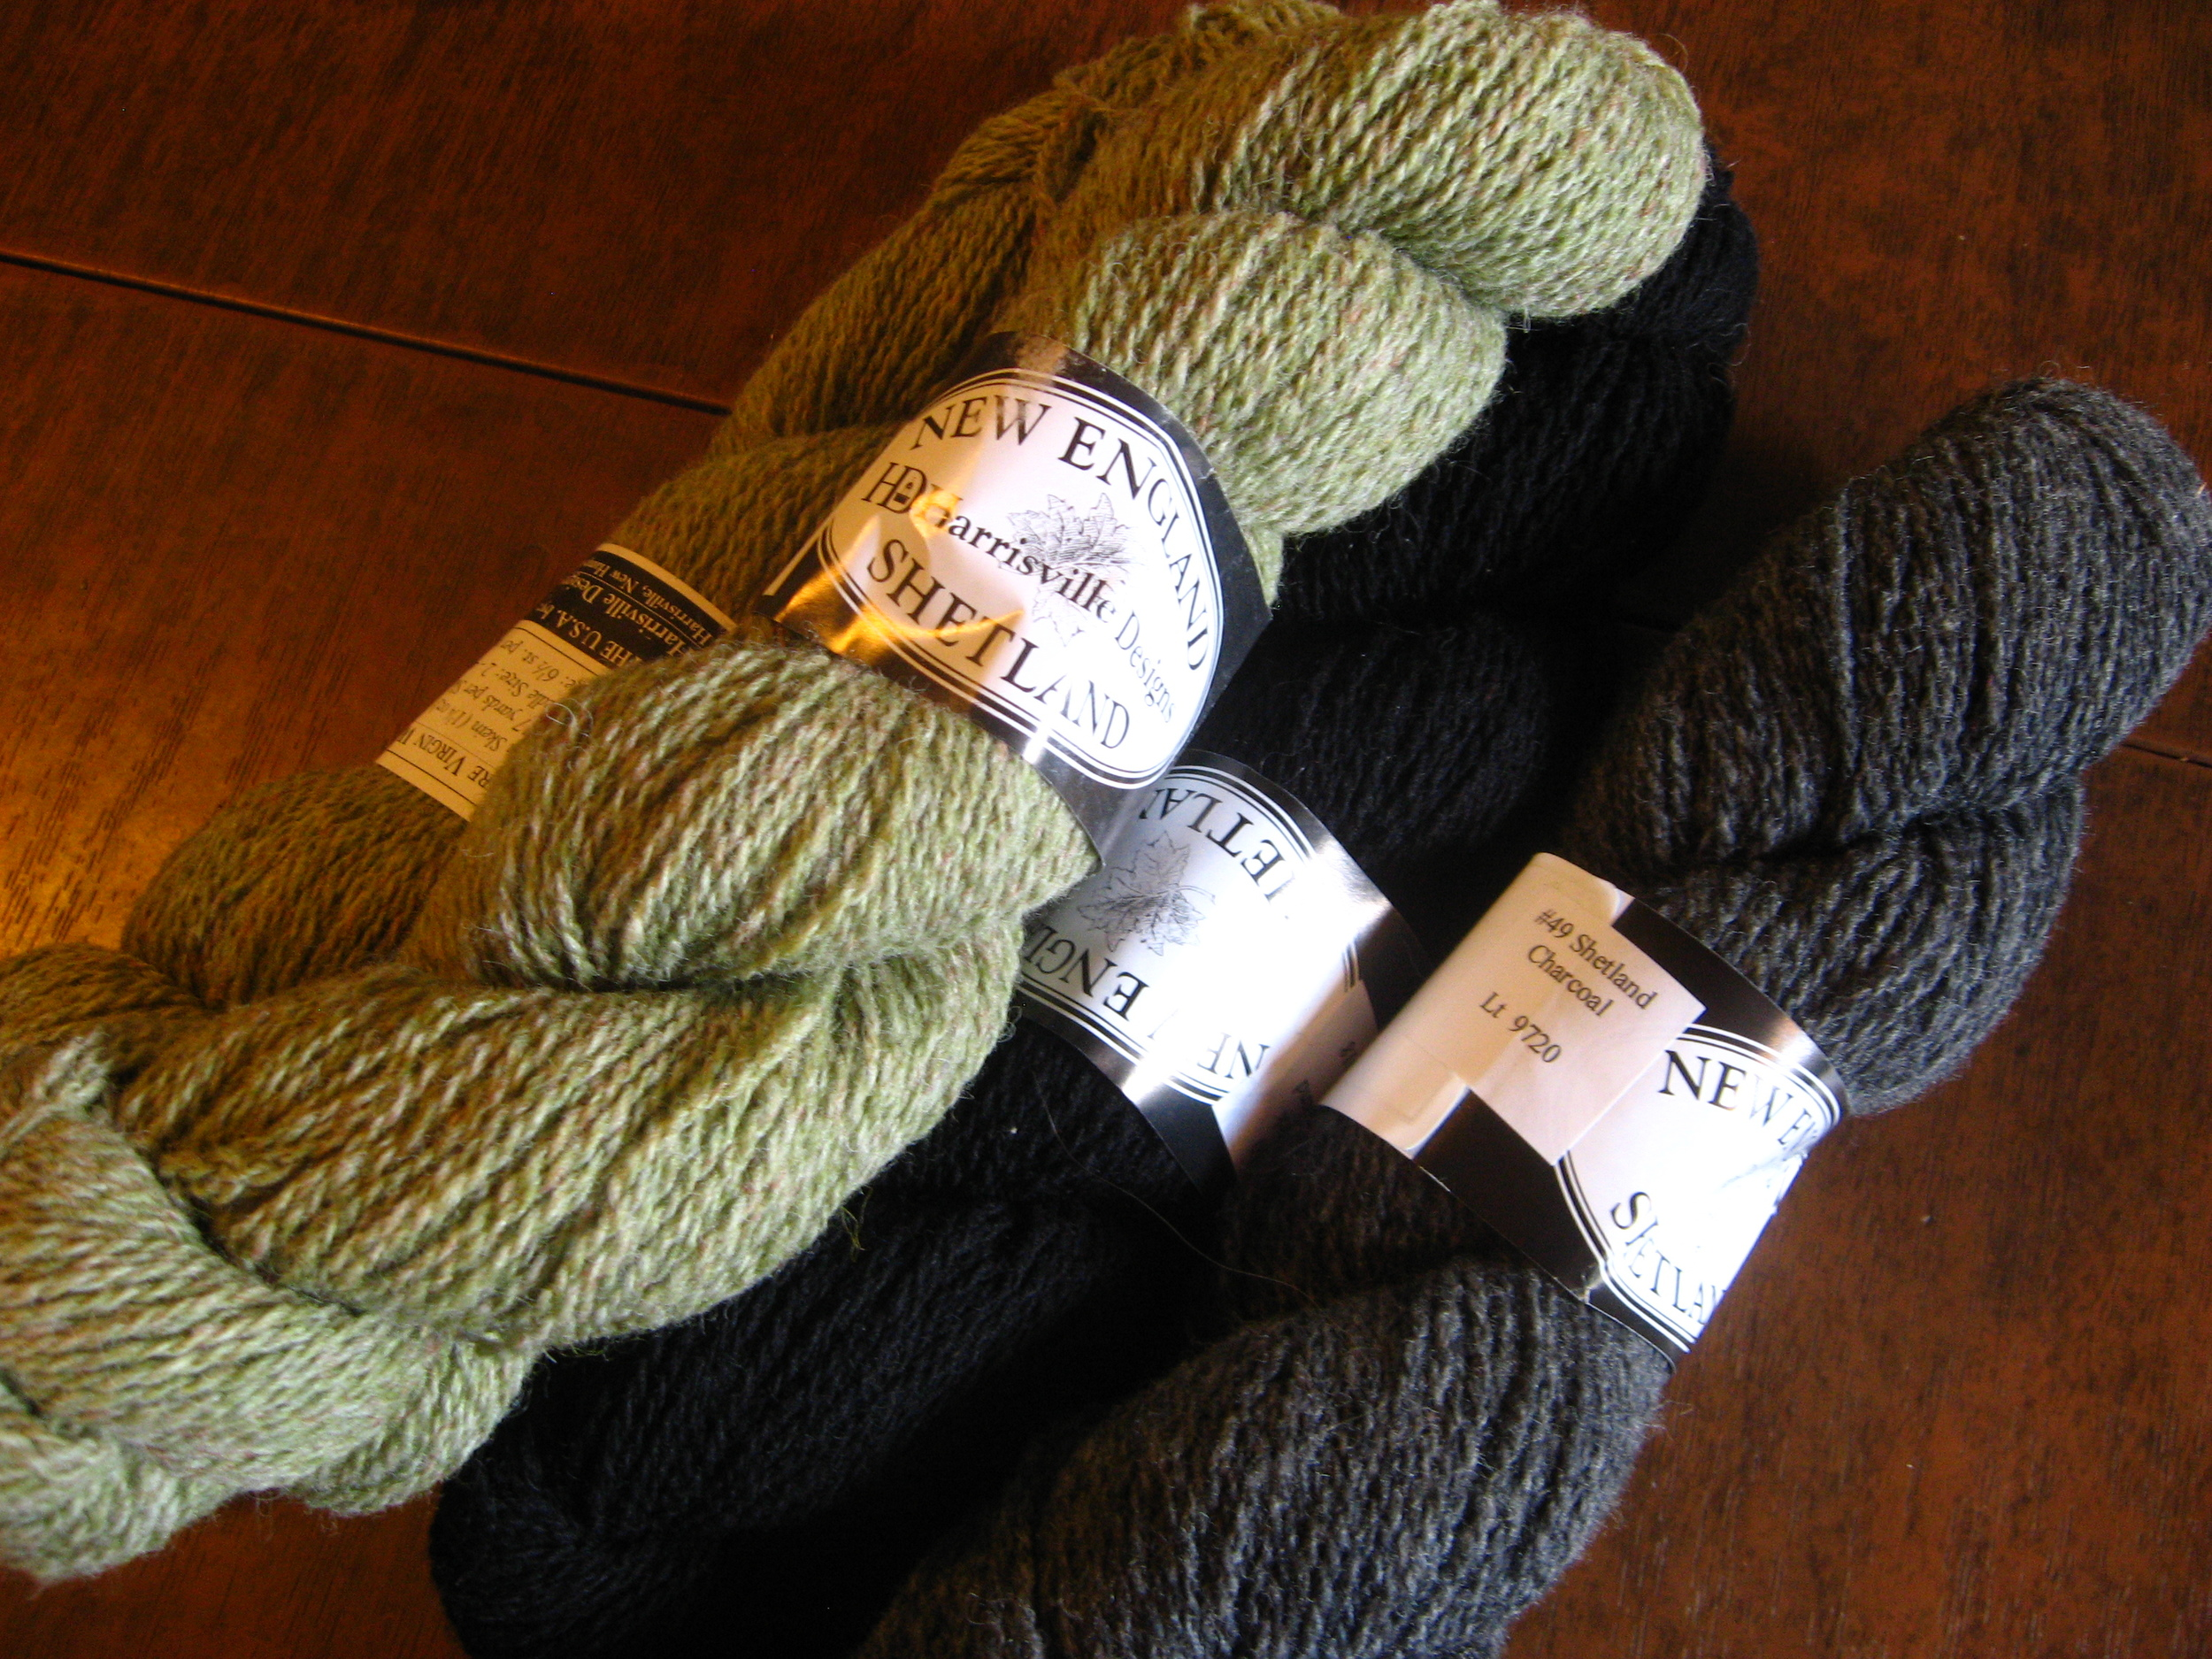 The inch of sweater was made out of this yarn, so I put a few skeins of this aside.